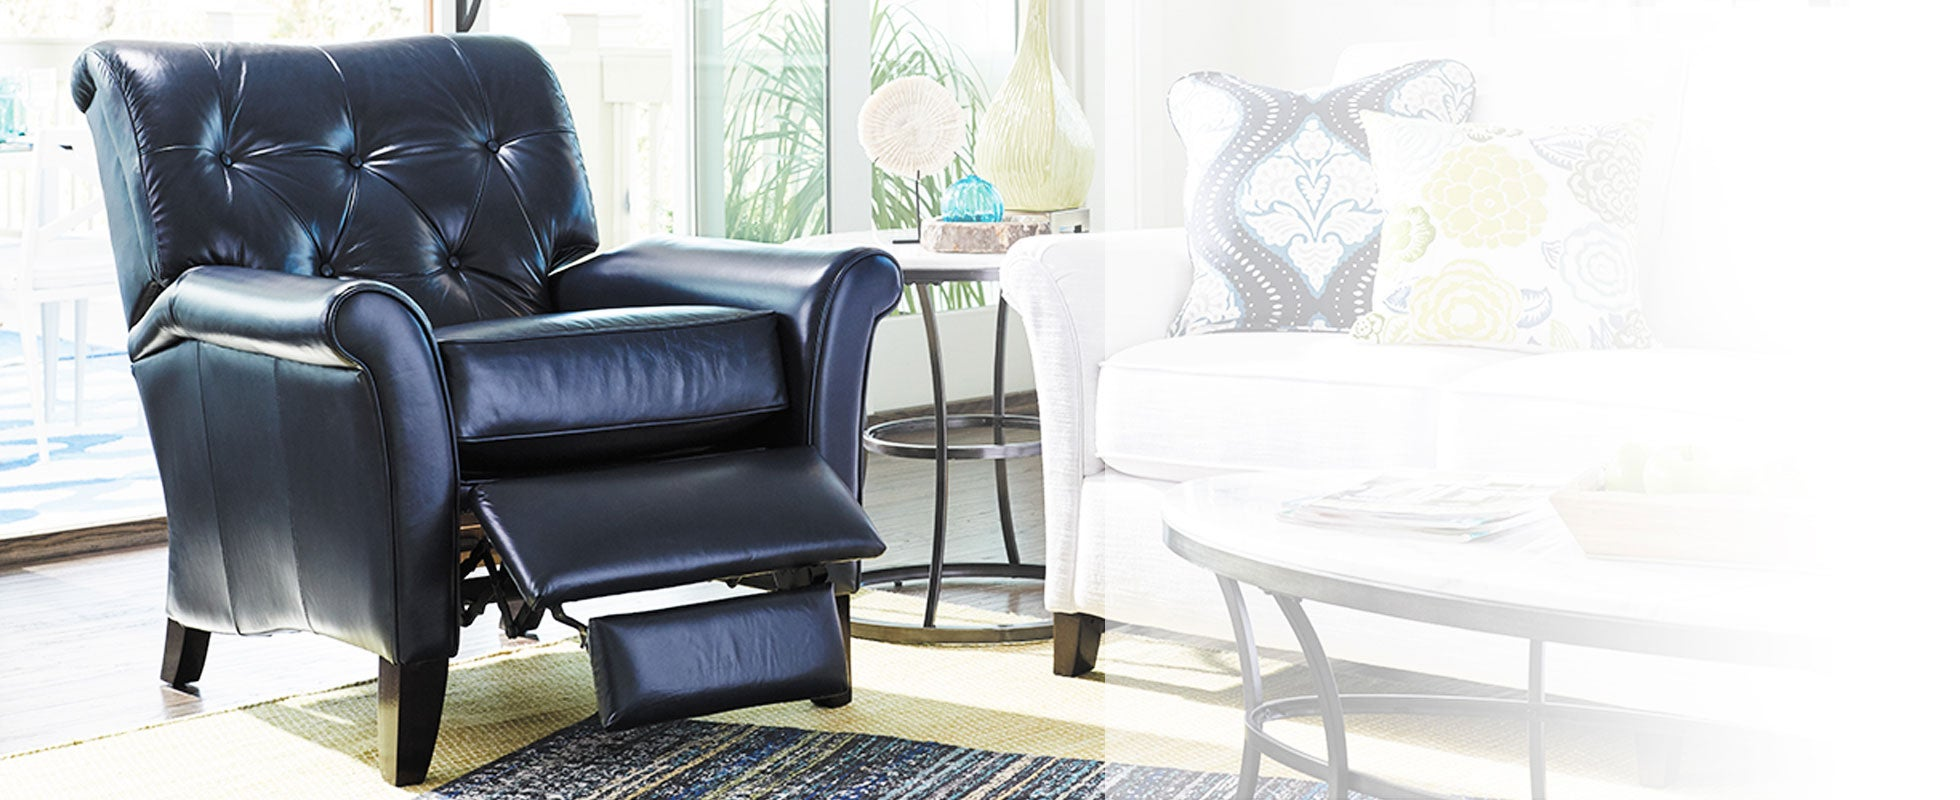 Our Superior Recliner Chairs Come In Various Styles To Complement Any Room.